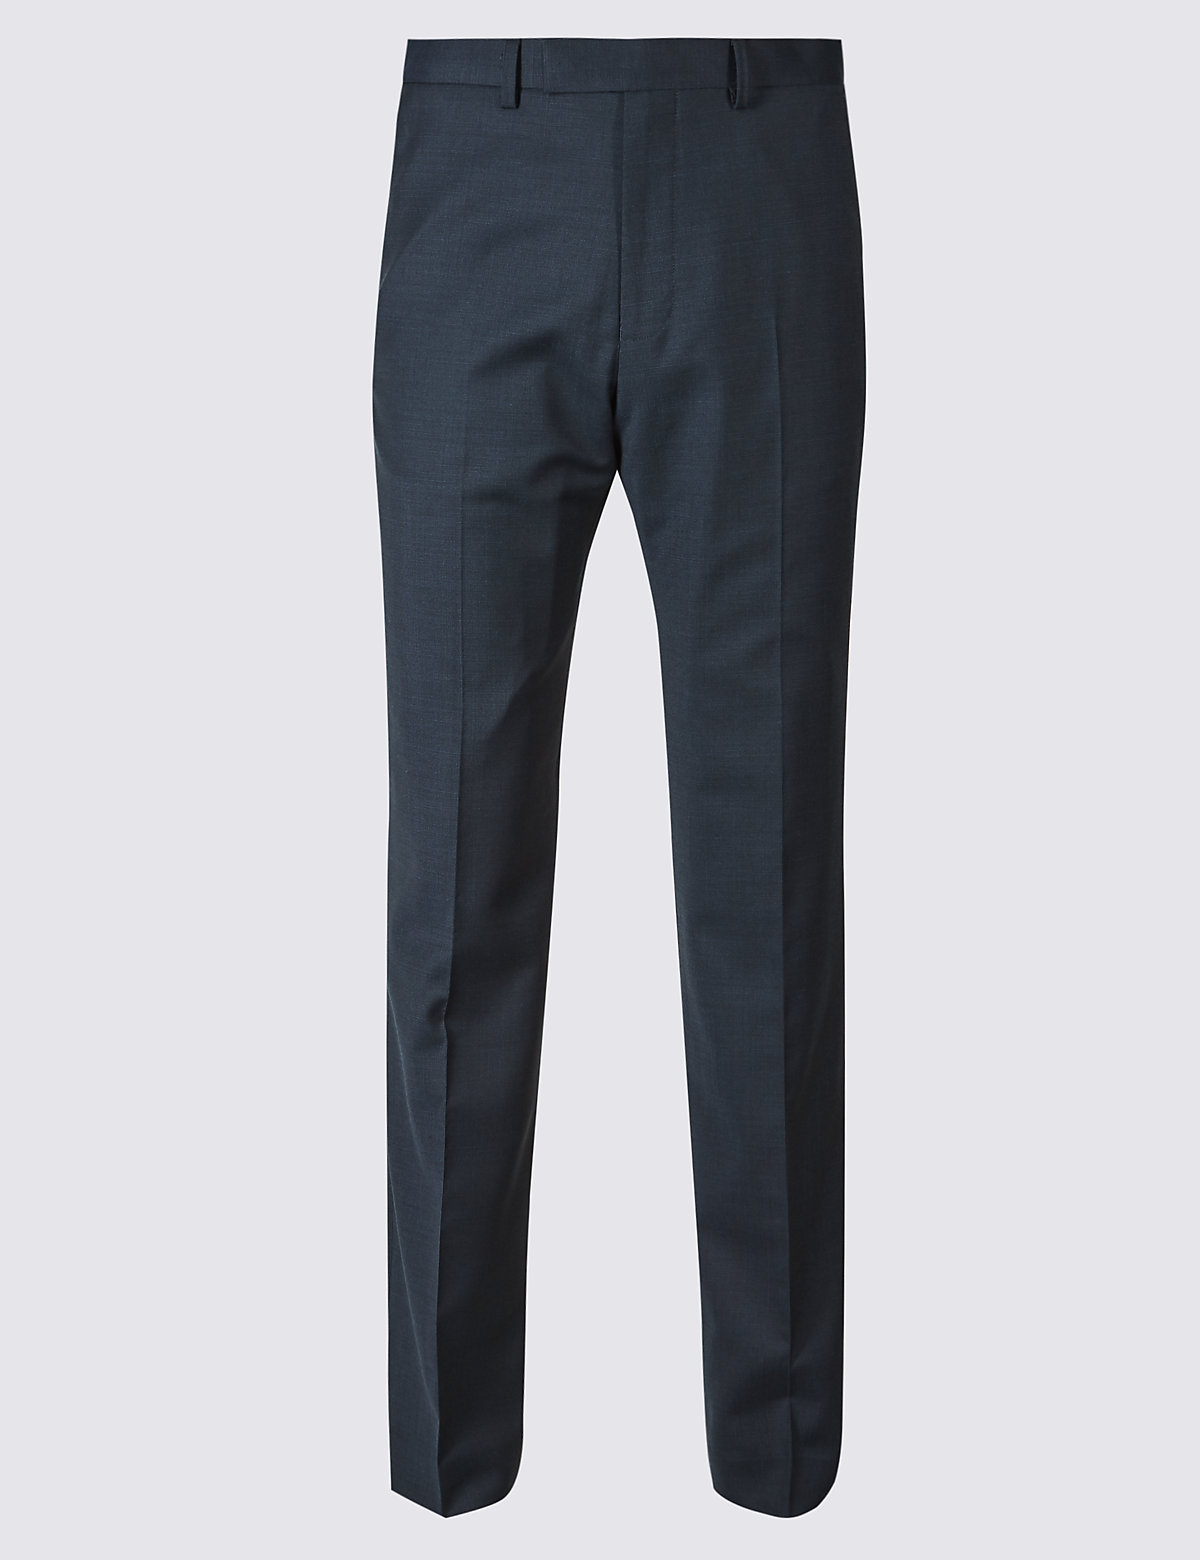 Marks & Spencer Navy Regular Fit Wool Trousers